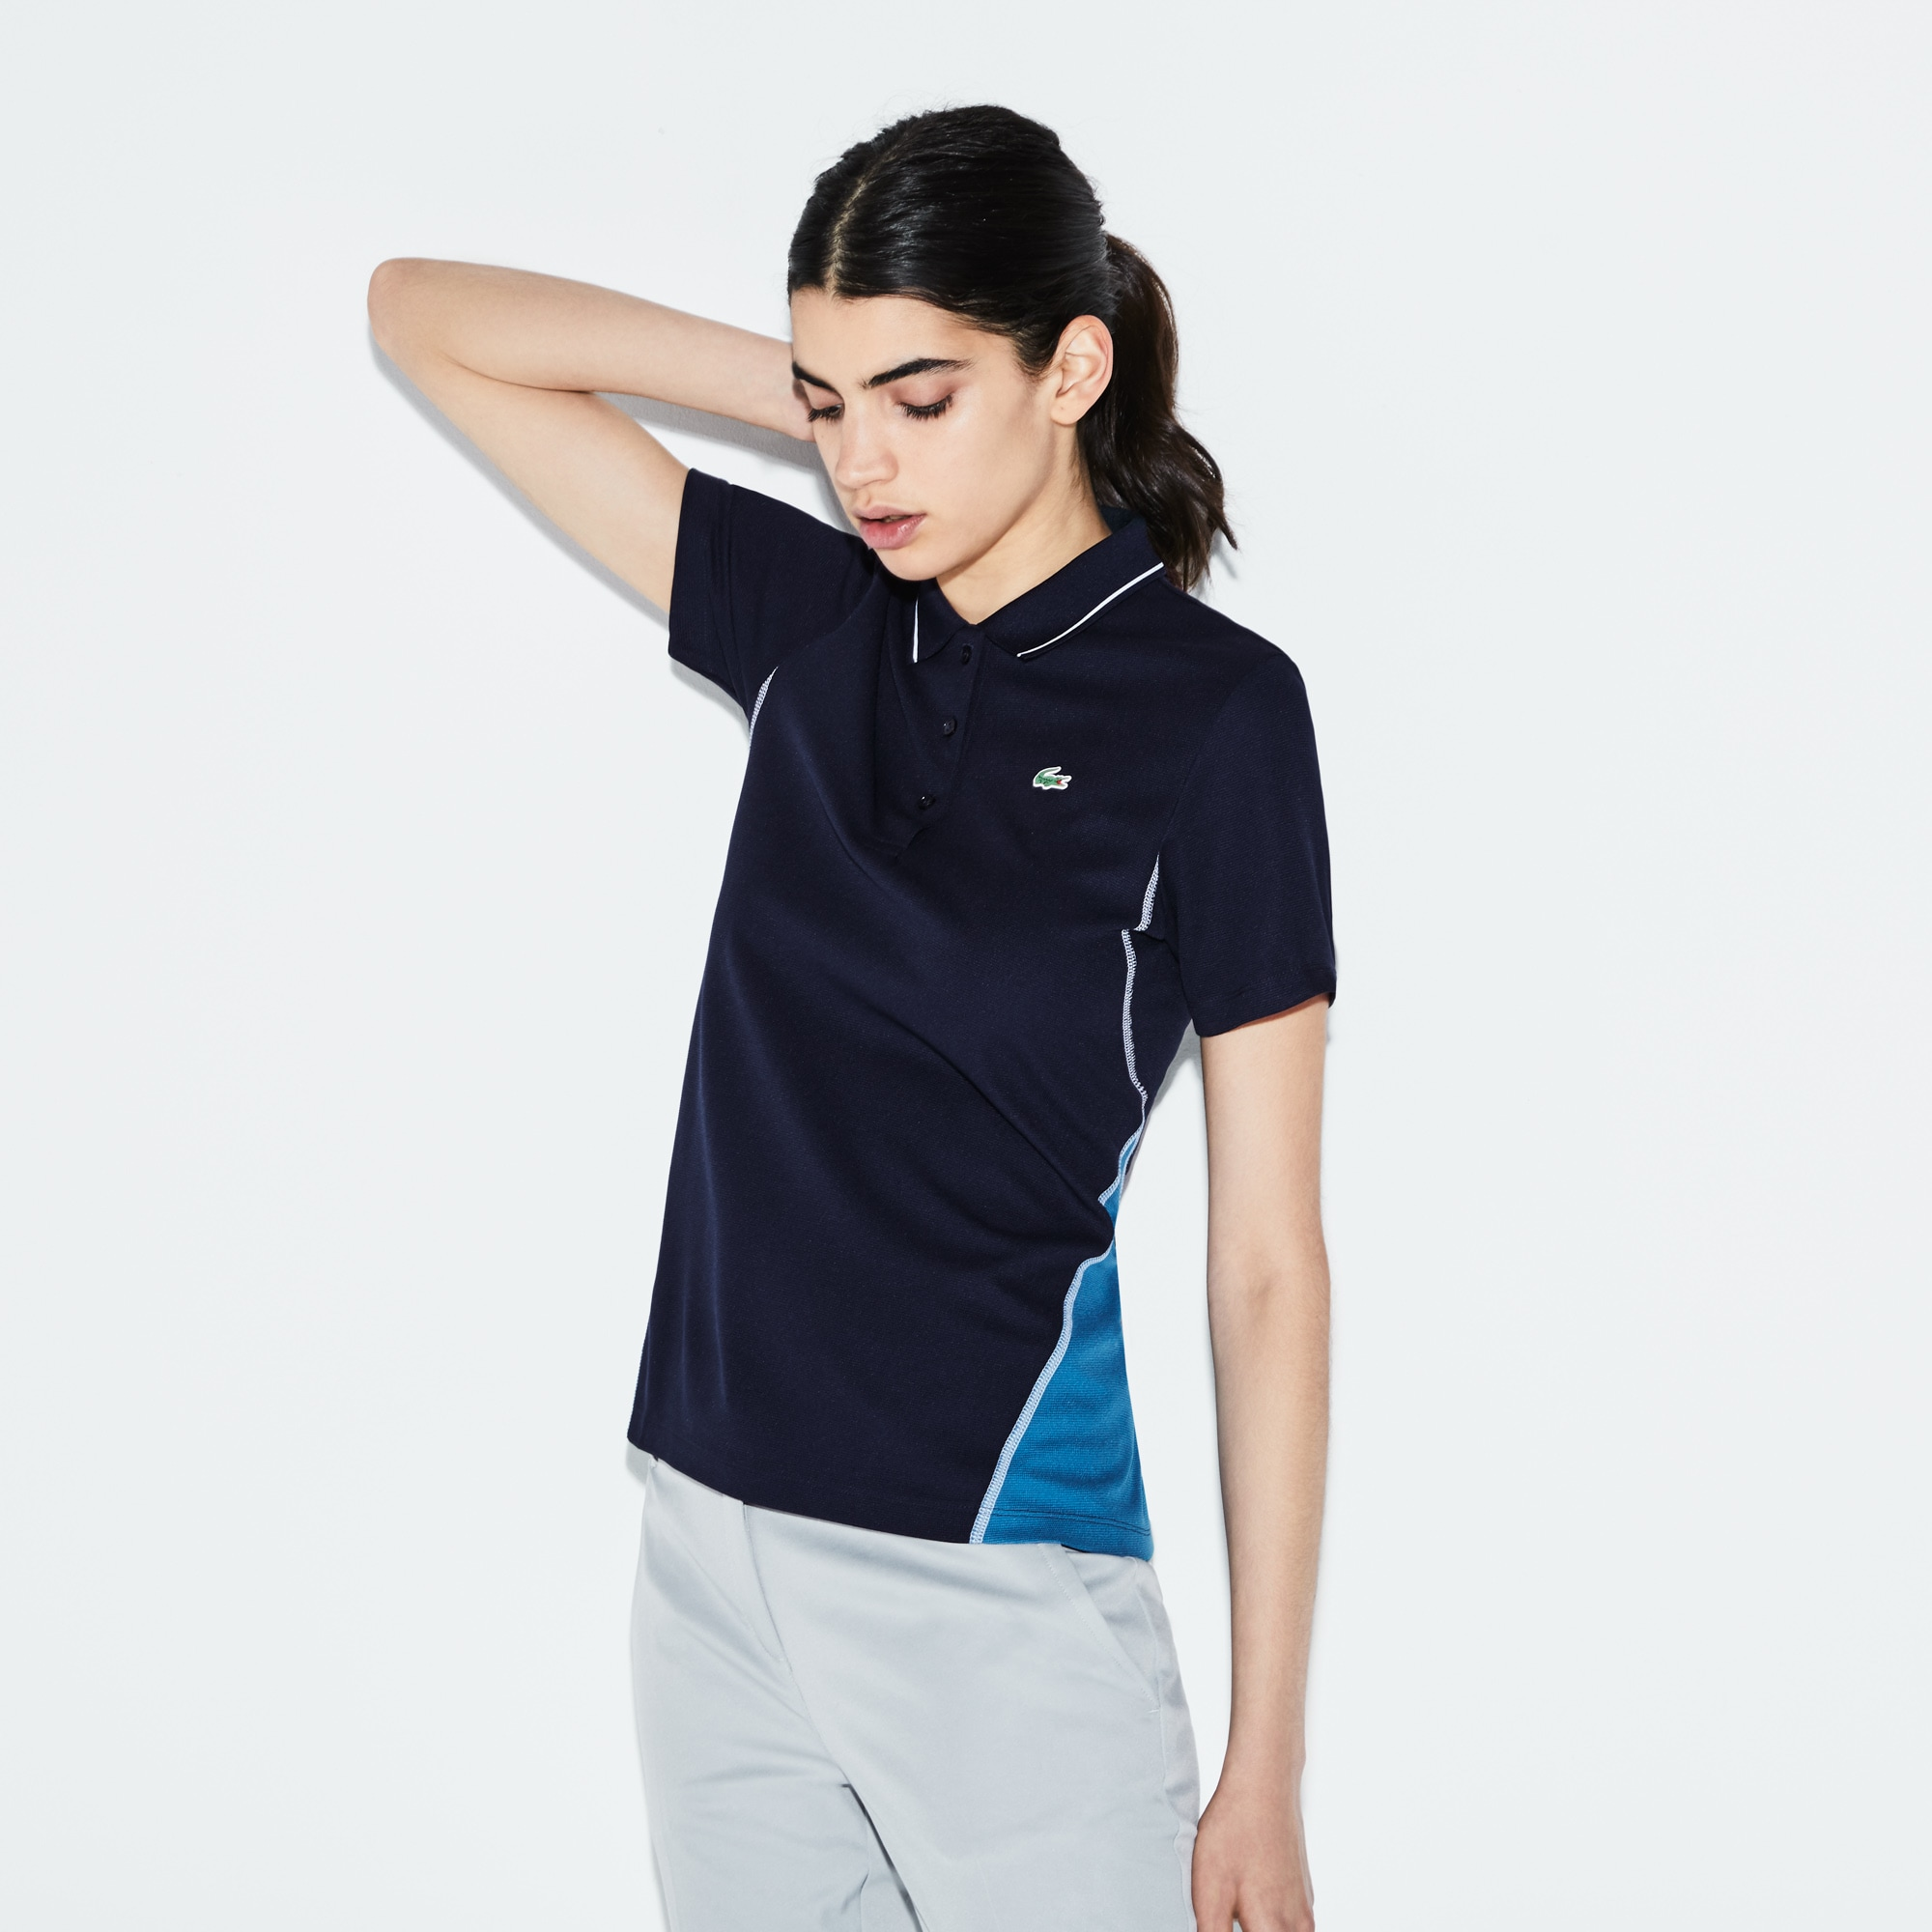 Women's SPORT Technical Knit Golf Polo